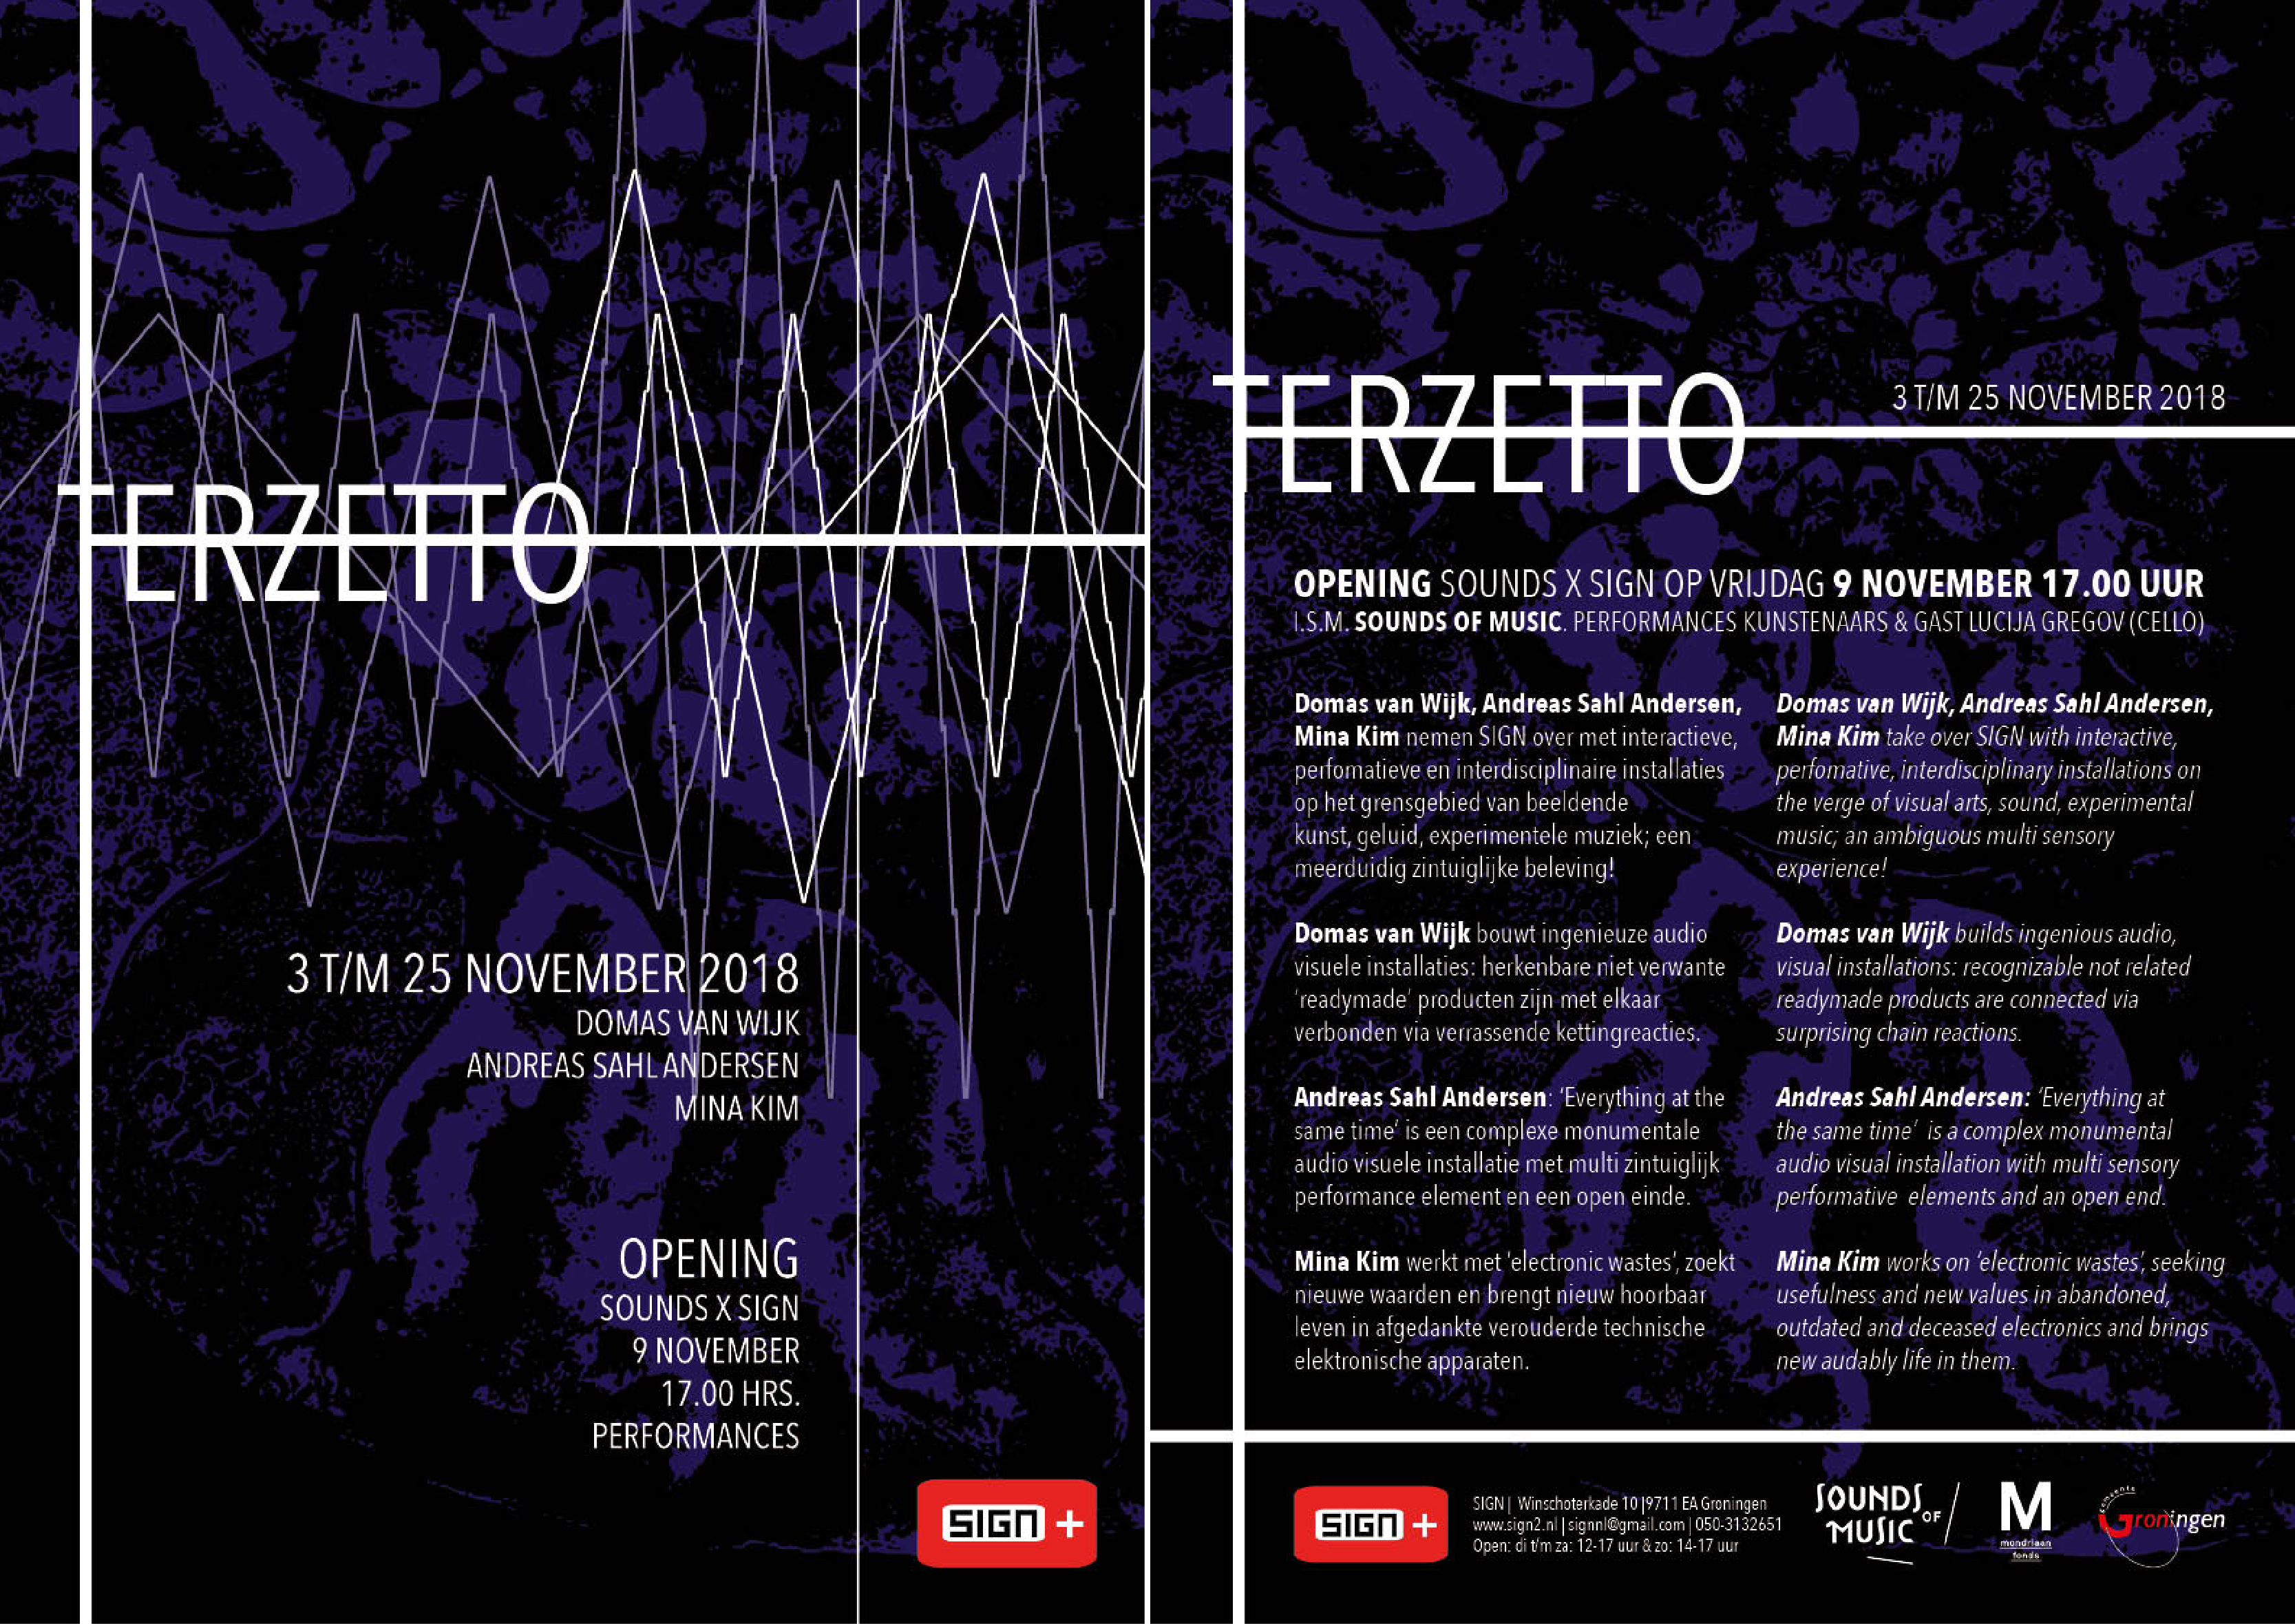 terzetto poster